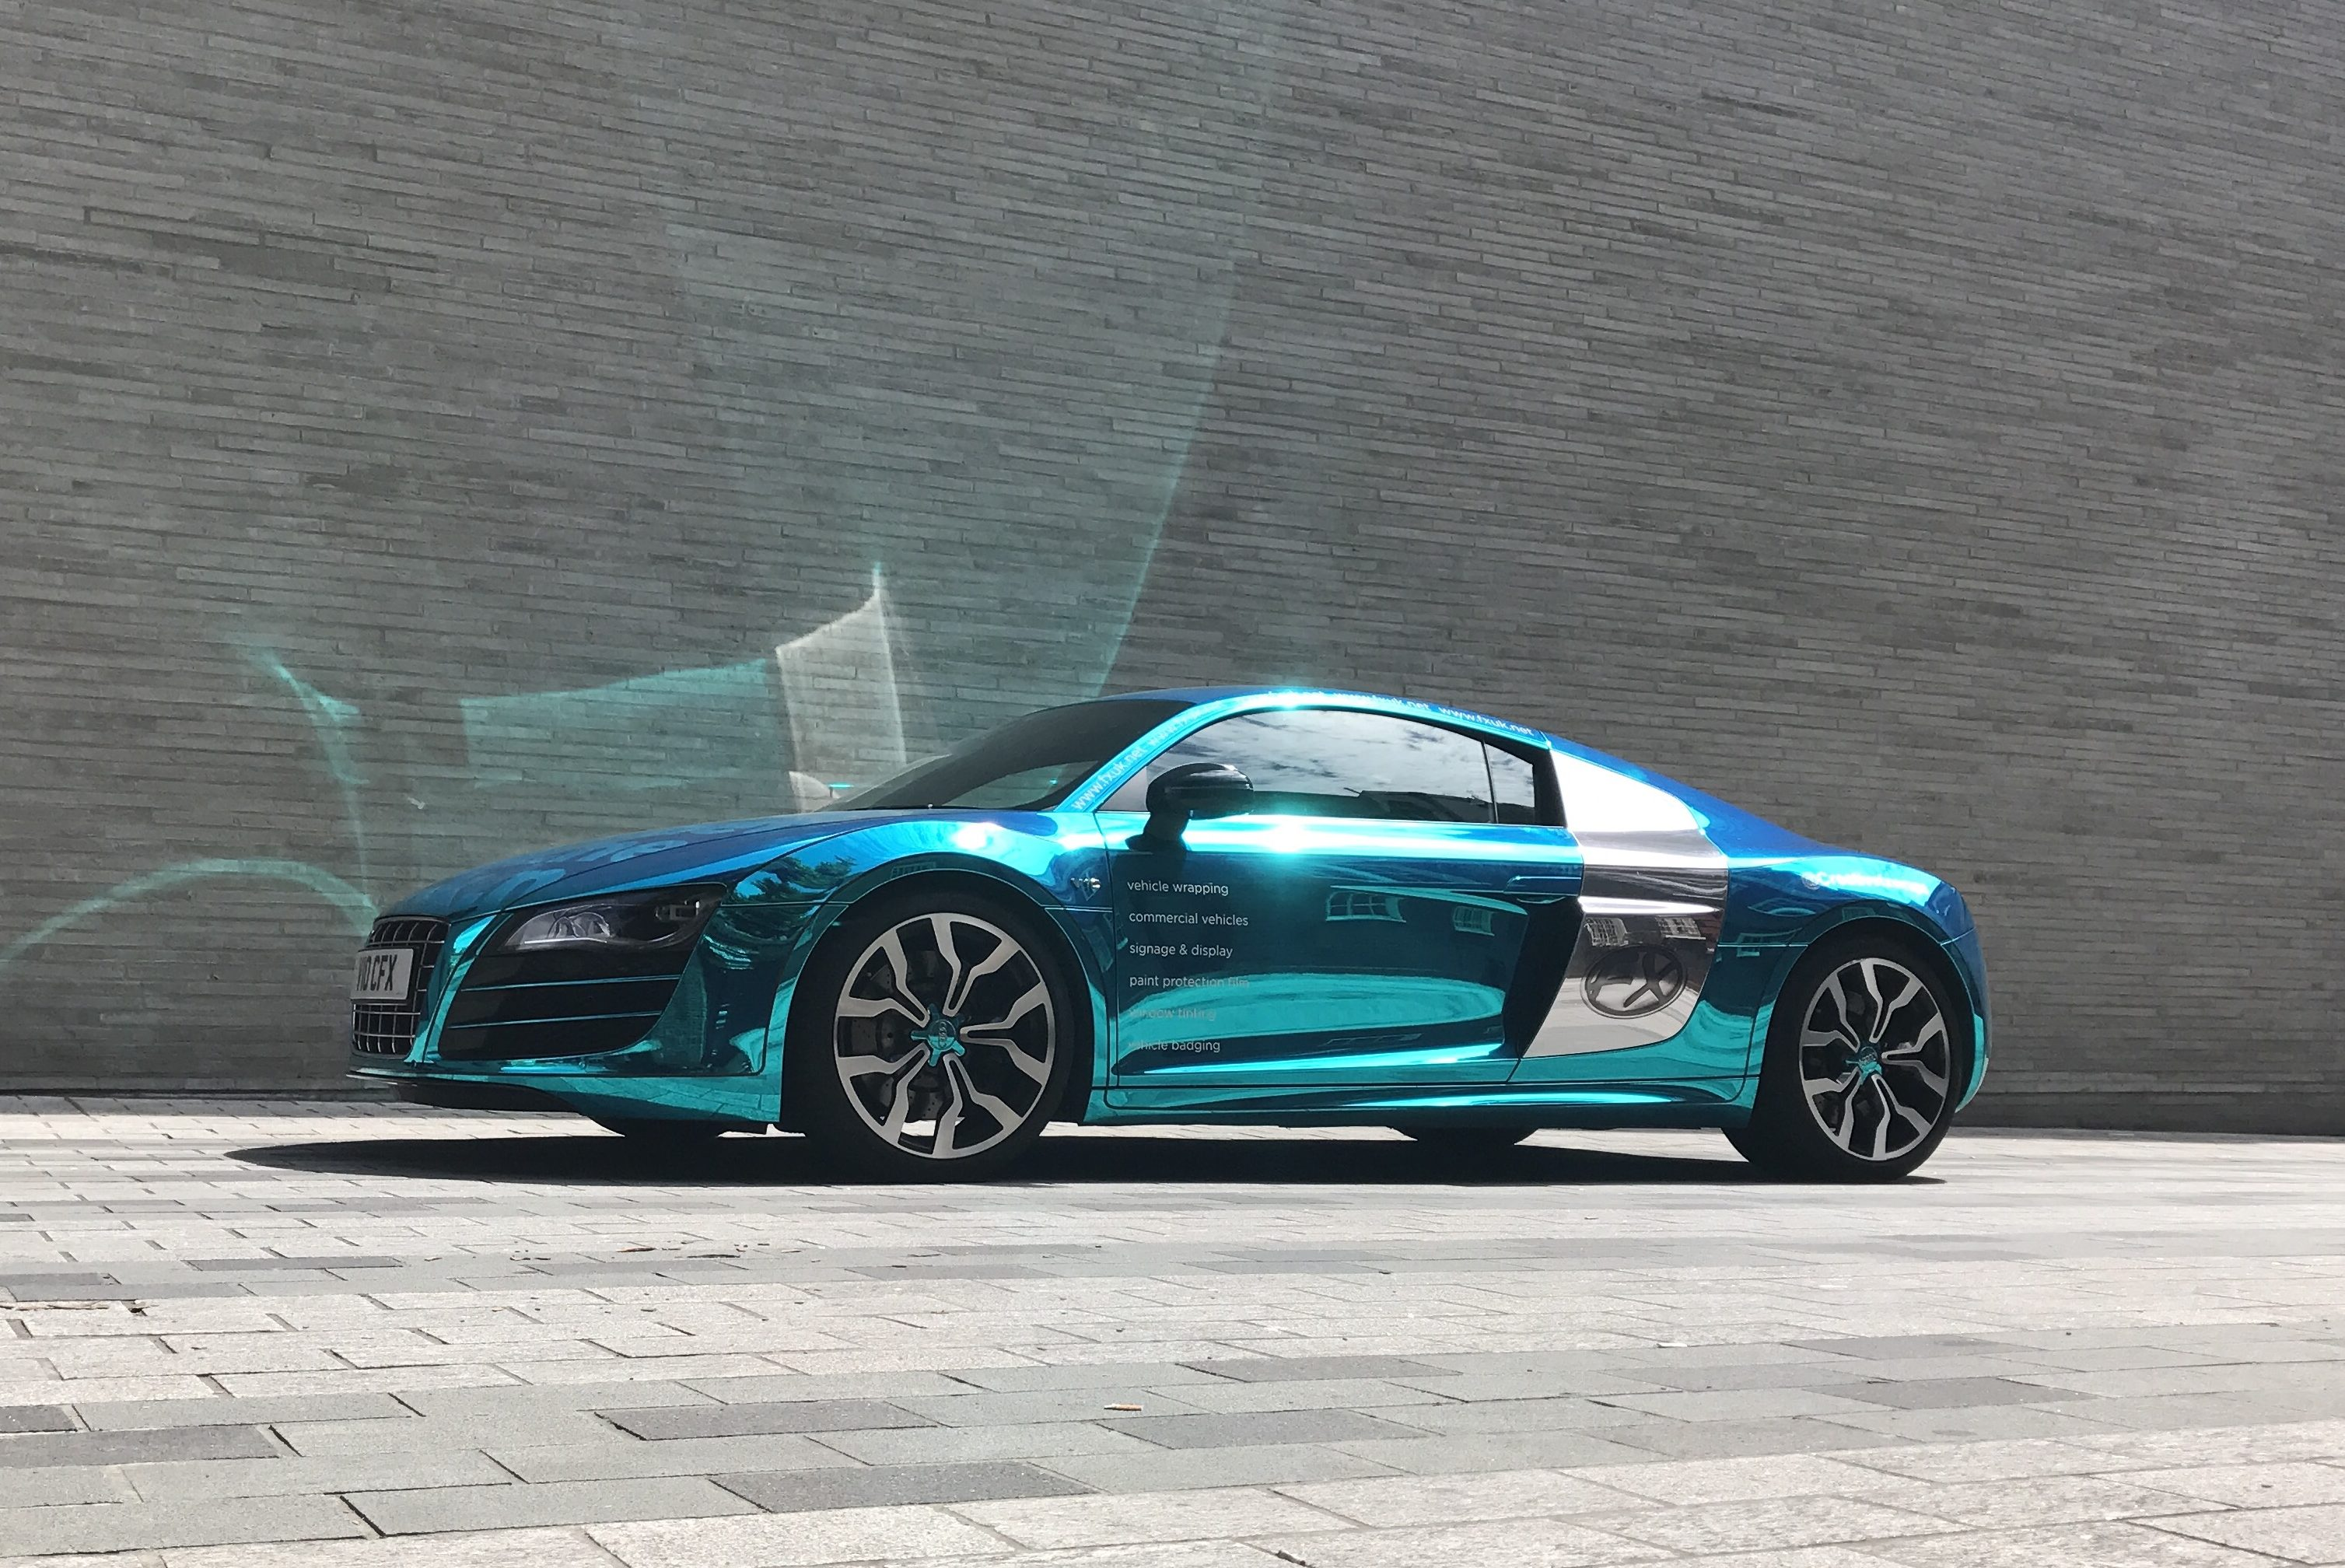 Audi R V Wrapped In Chrome By CFX London - Audi r8 commercial